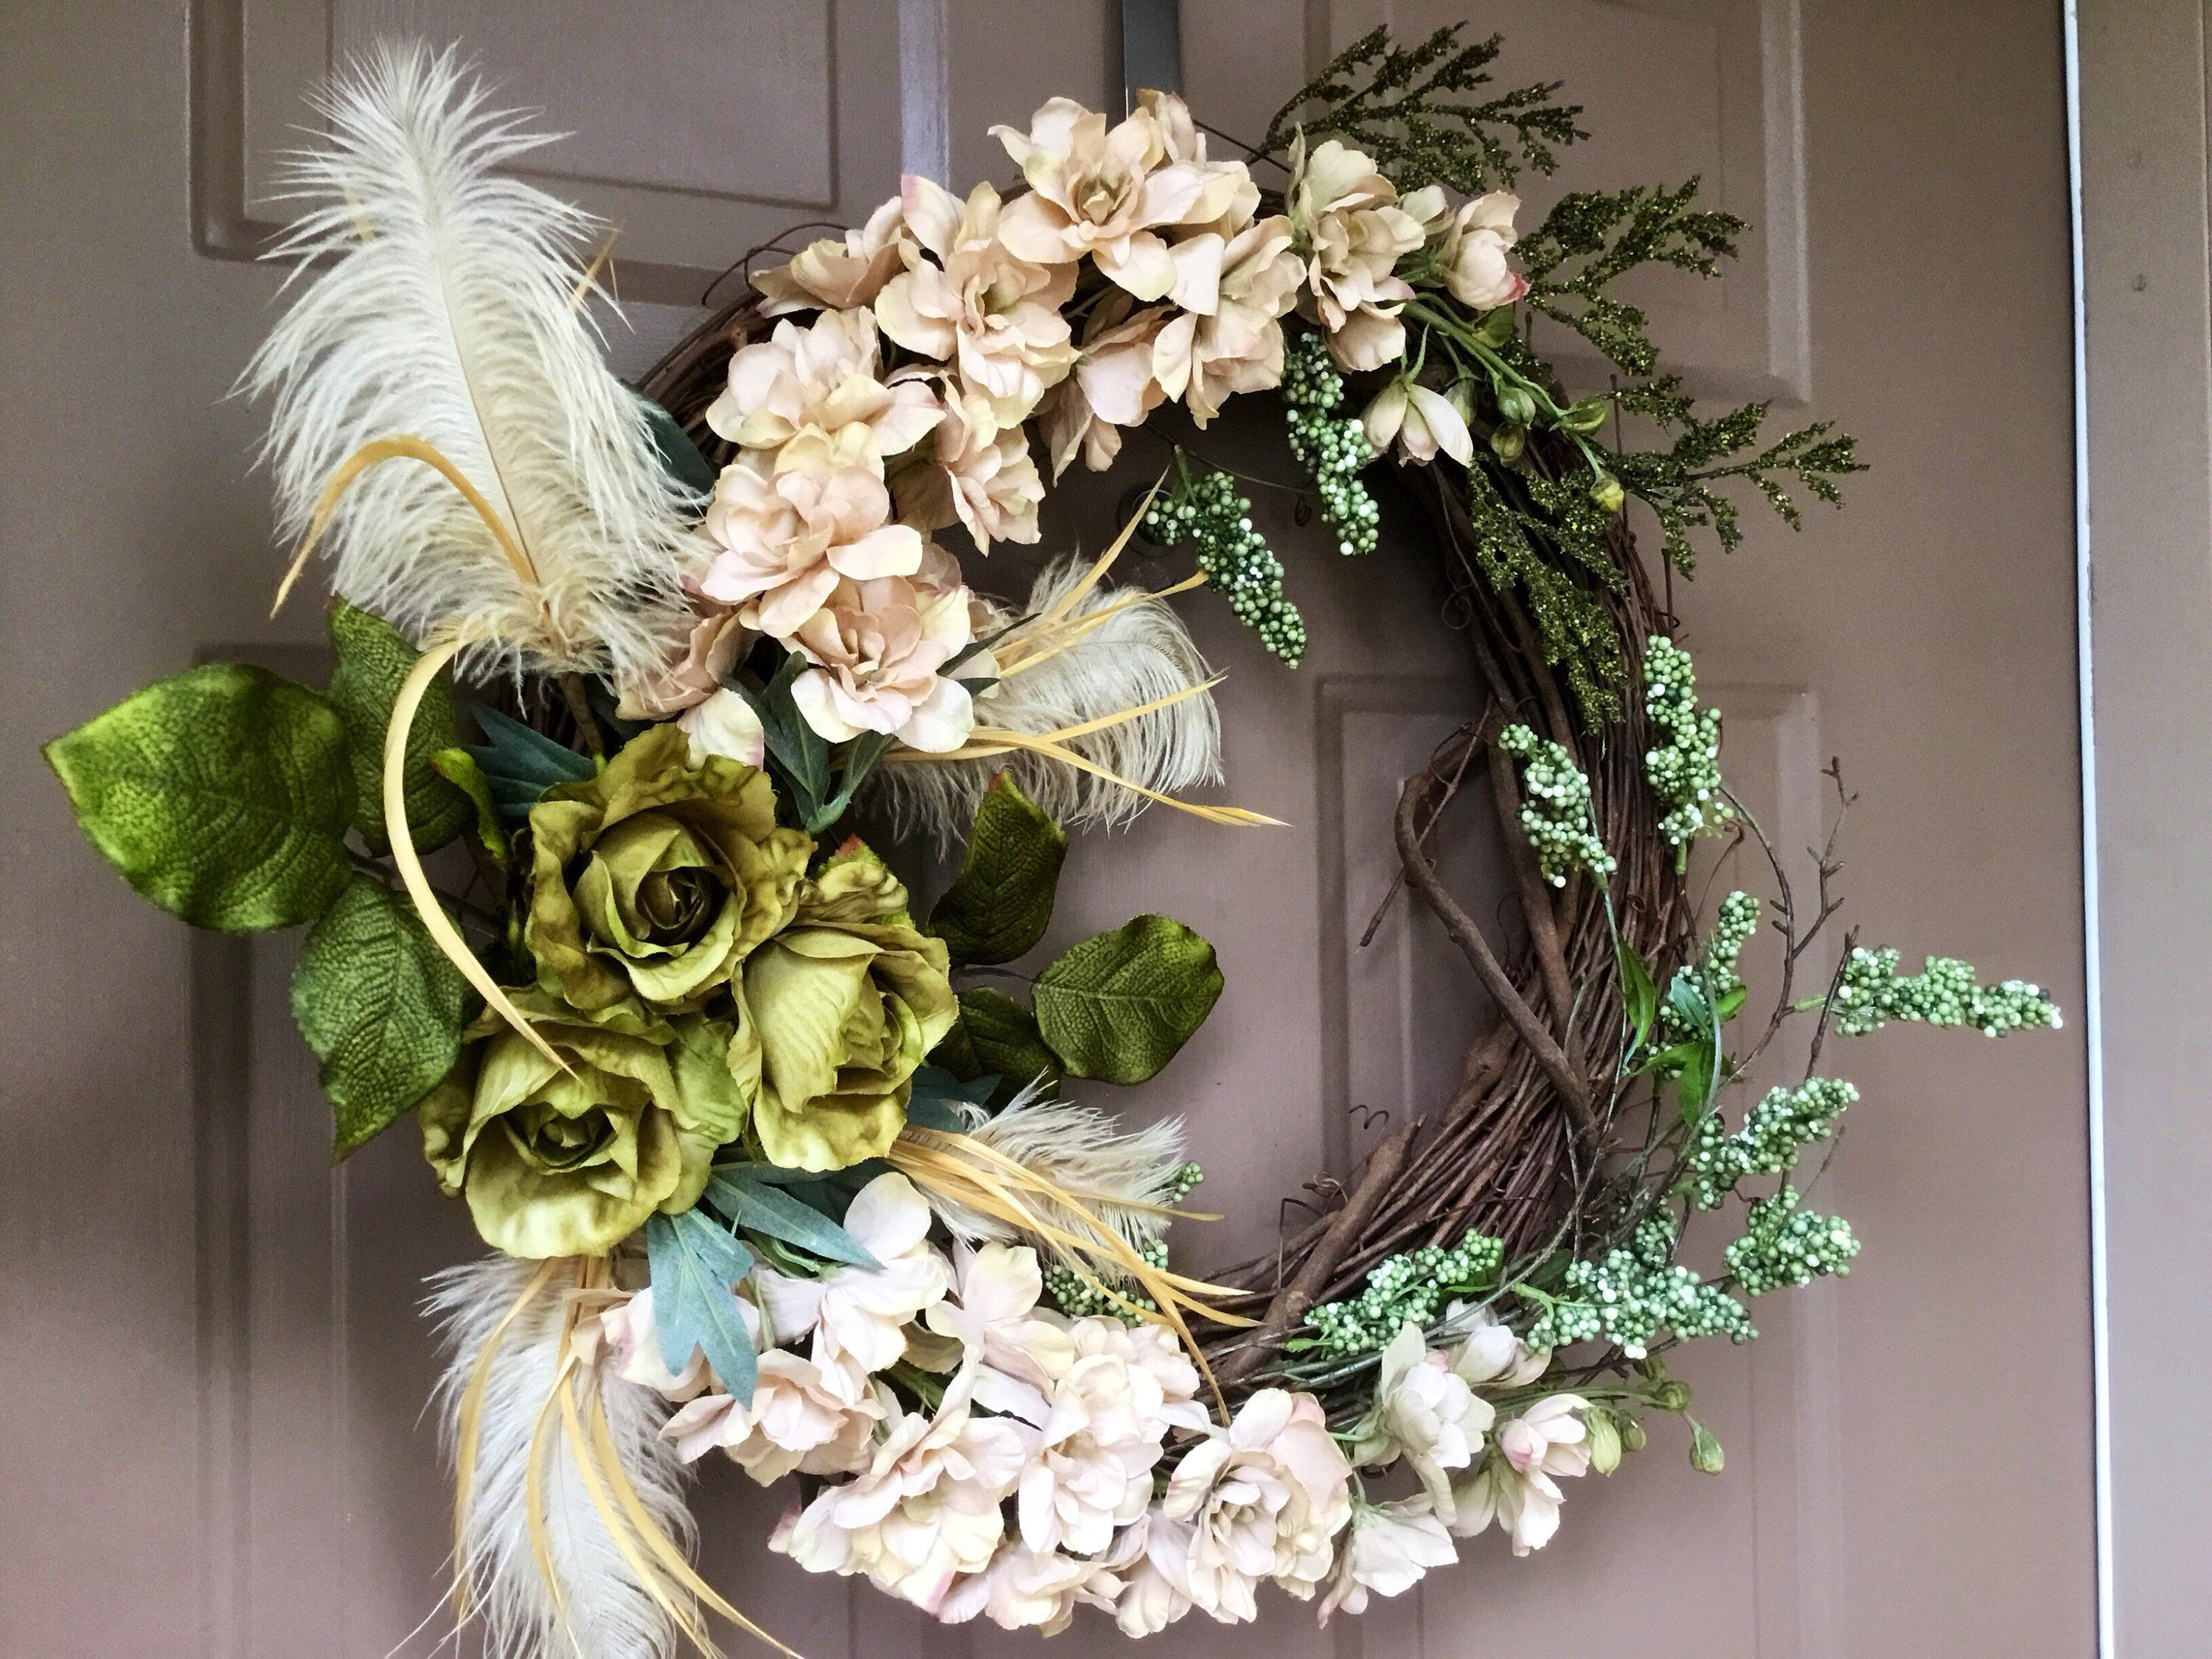 Modern Wreath Fall Wreath Thanksgiving Wreath Autumn Wreath Green Beige Wreath Indoor Wreath Outdoor Wreath Gift Wreath Indoor Wreath Grapevine Wreath Greenery Wreath